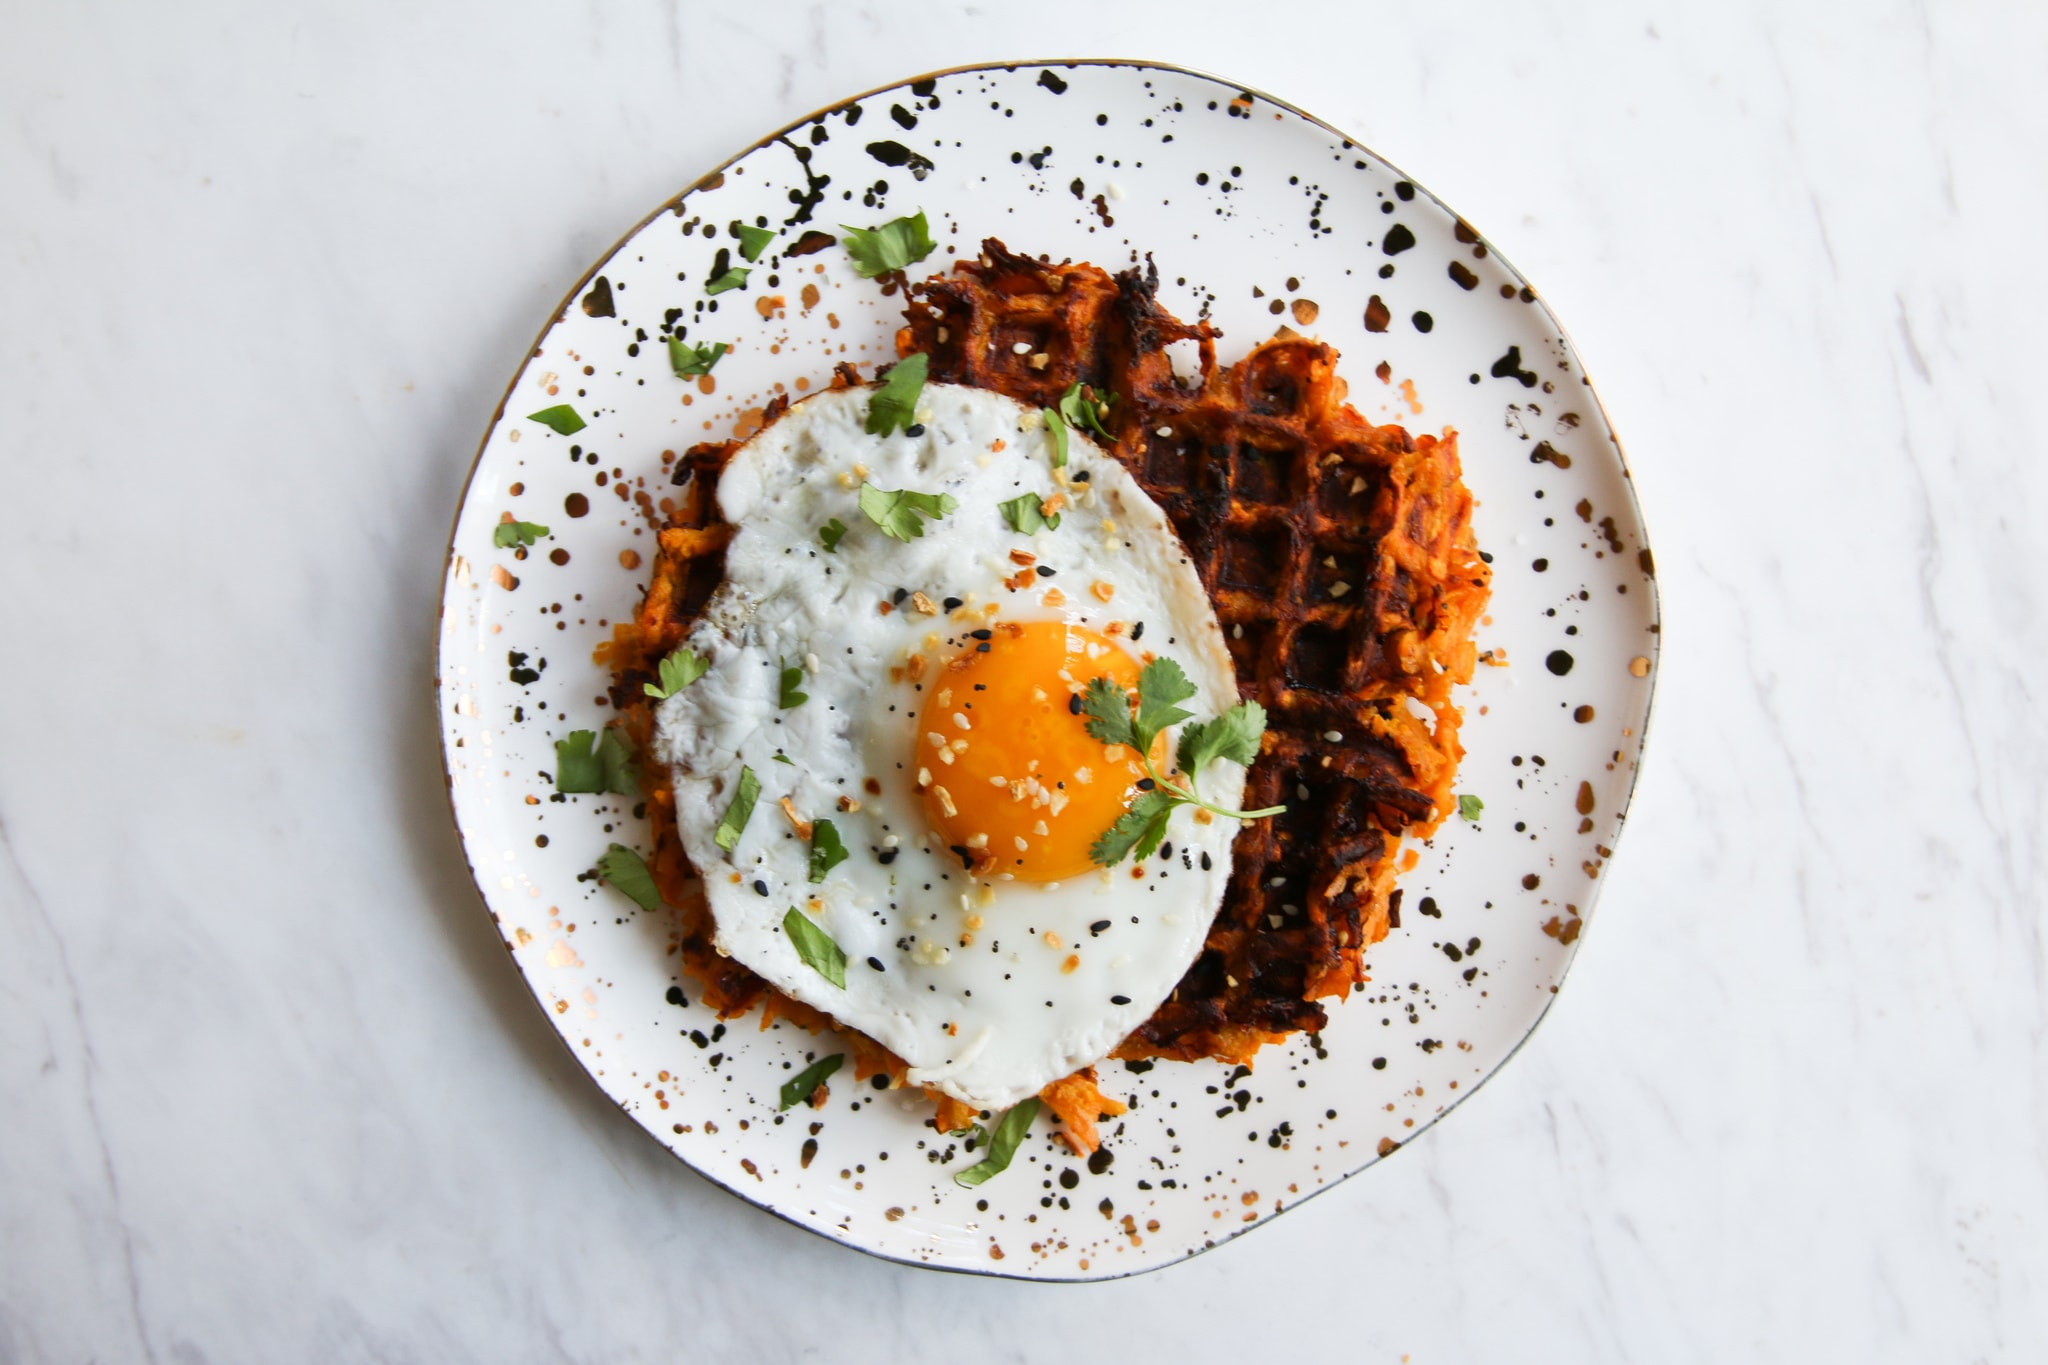 sweet potato waffle hashed browns with egg on top